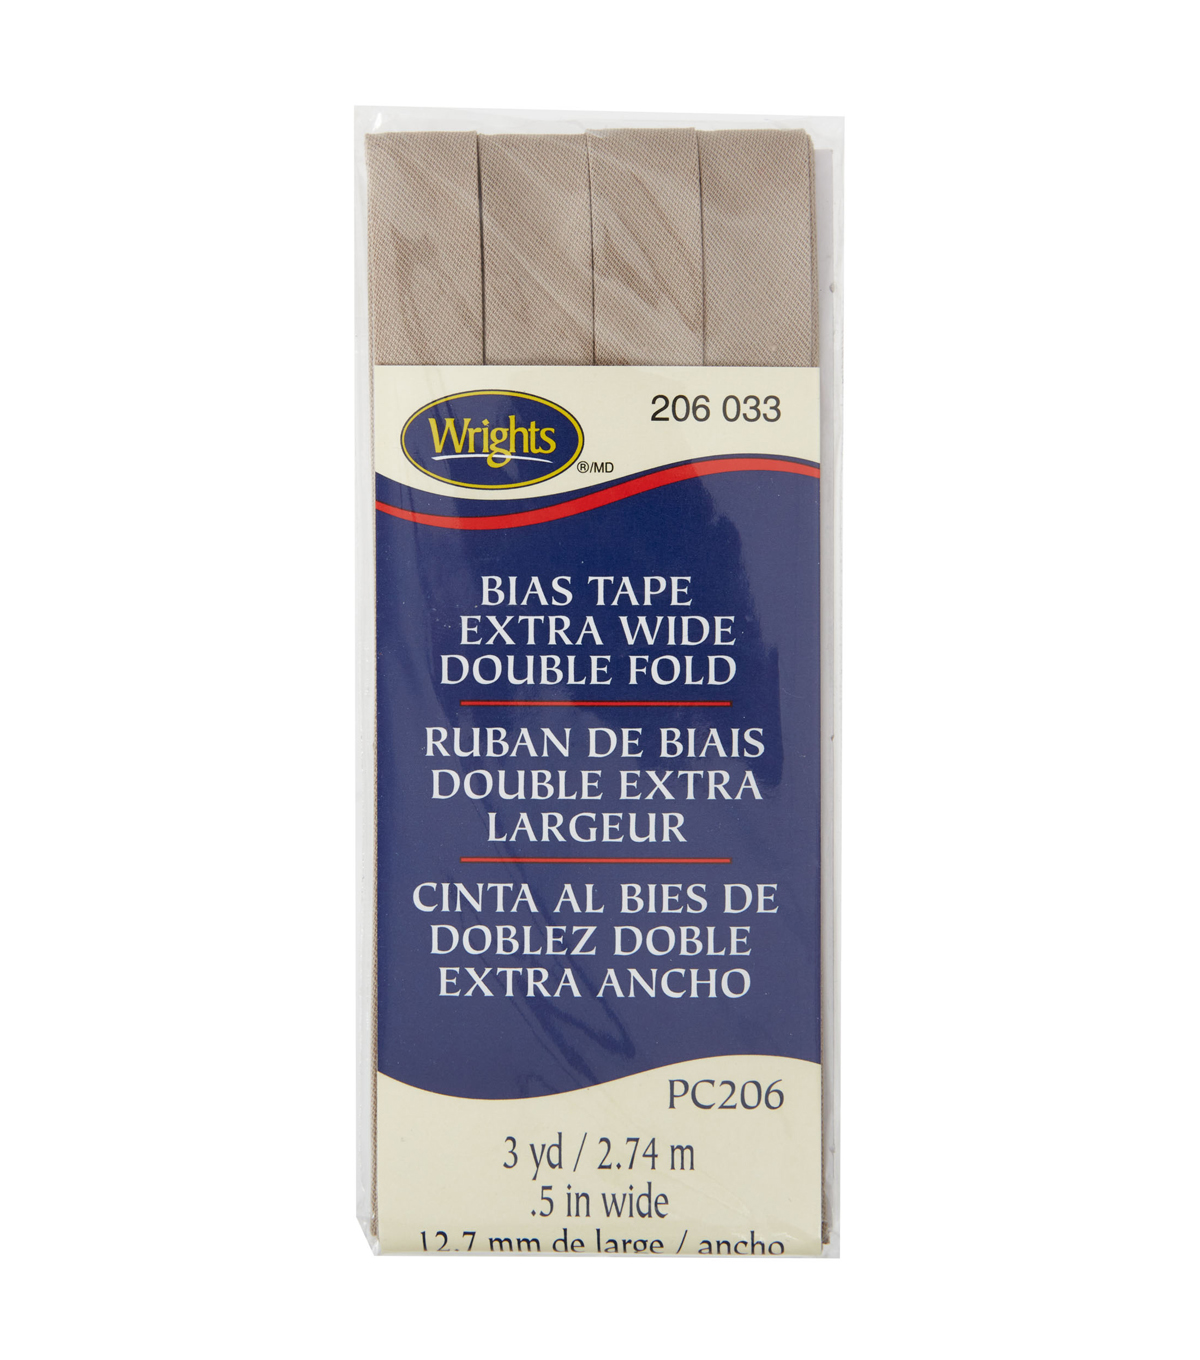 Wrights Extra Wide Double Fold Bias Tape, Foldo Taupe